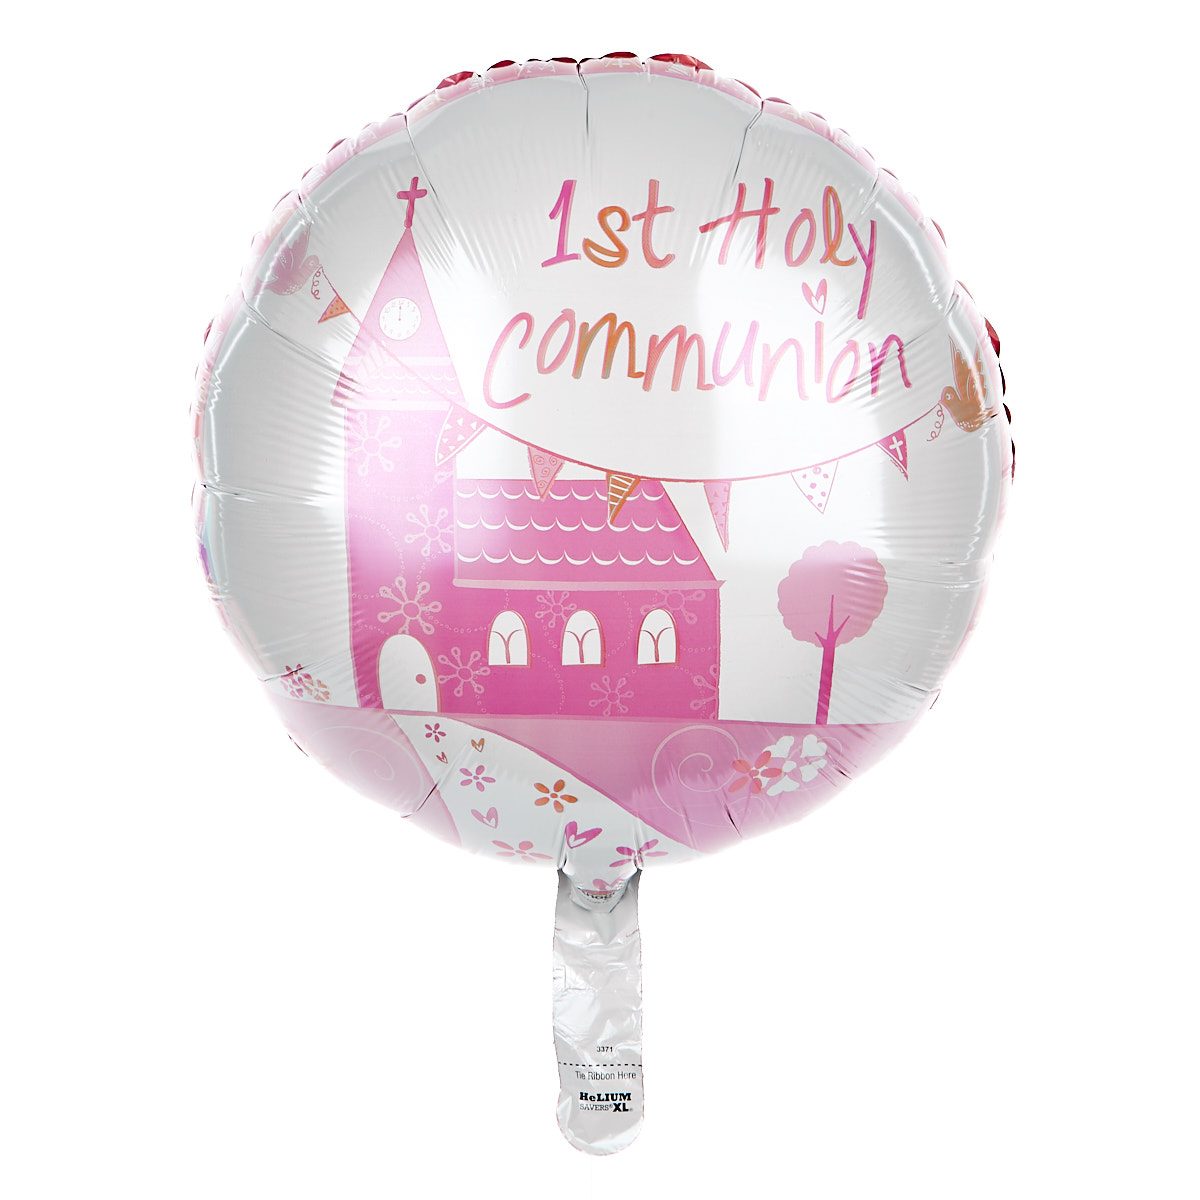 1st Holy Communion 18-Inch Foil Helium Balloon - Pink Church